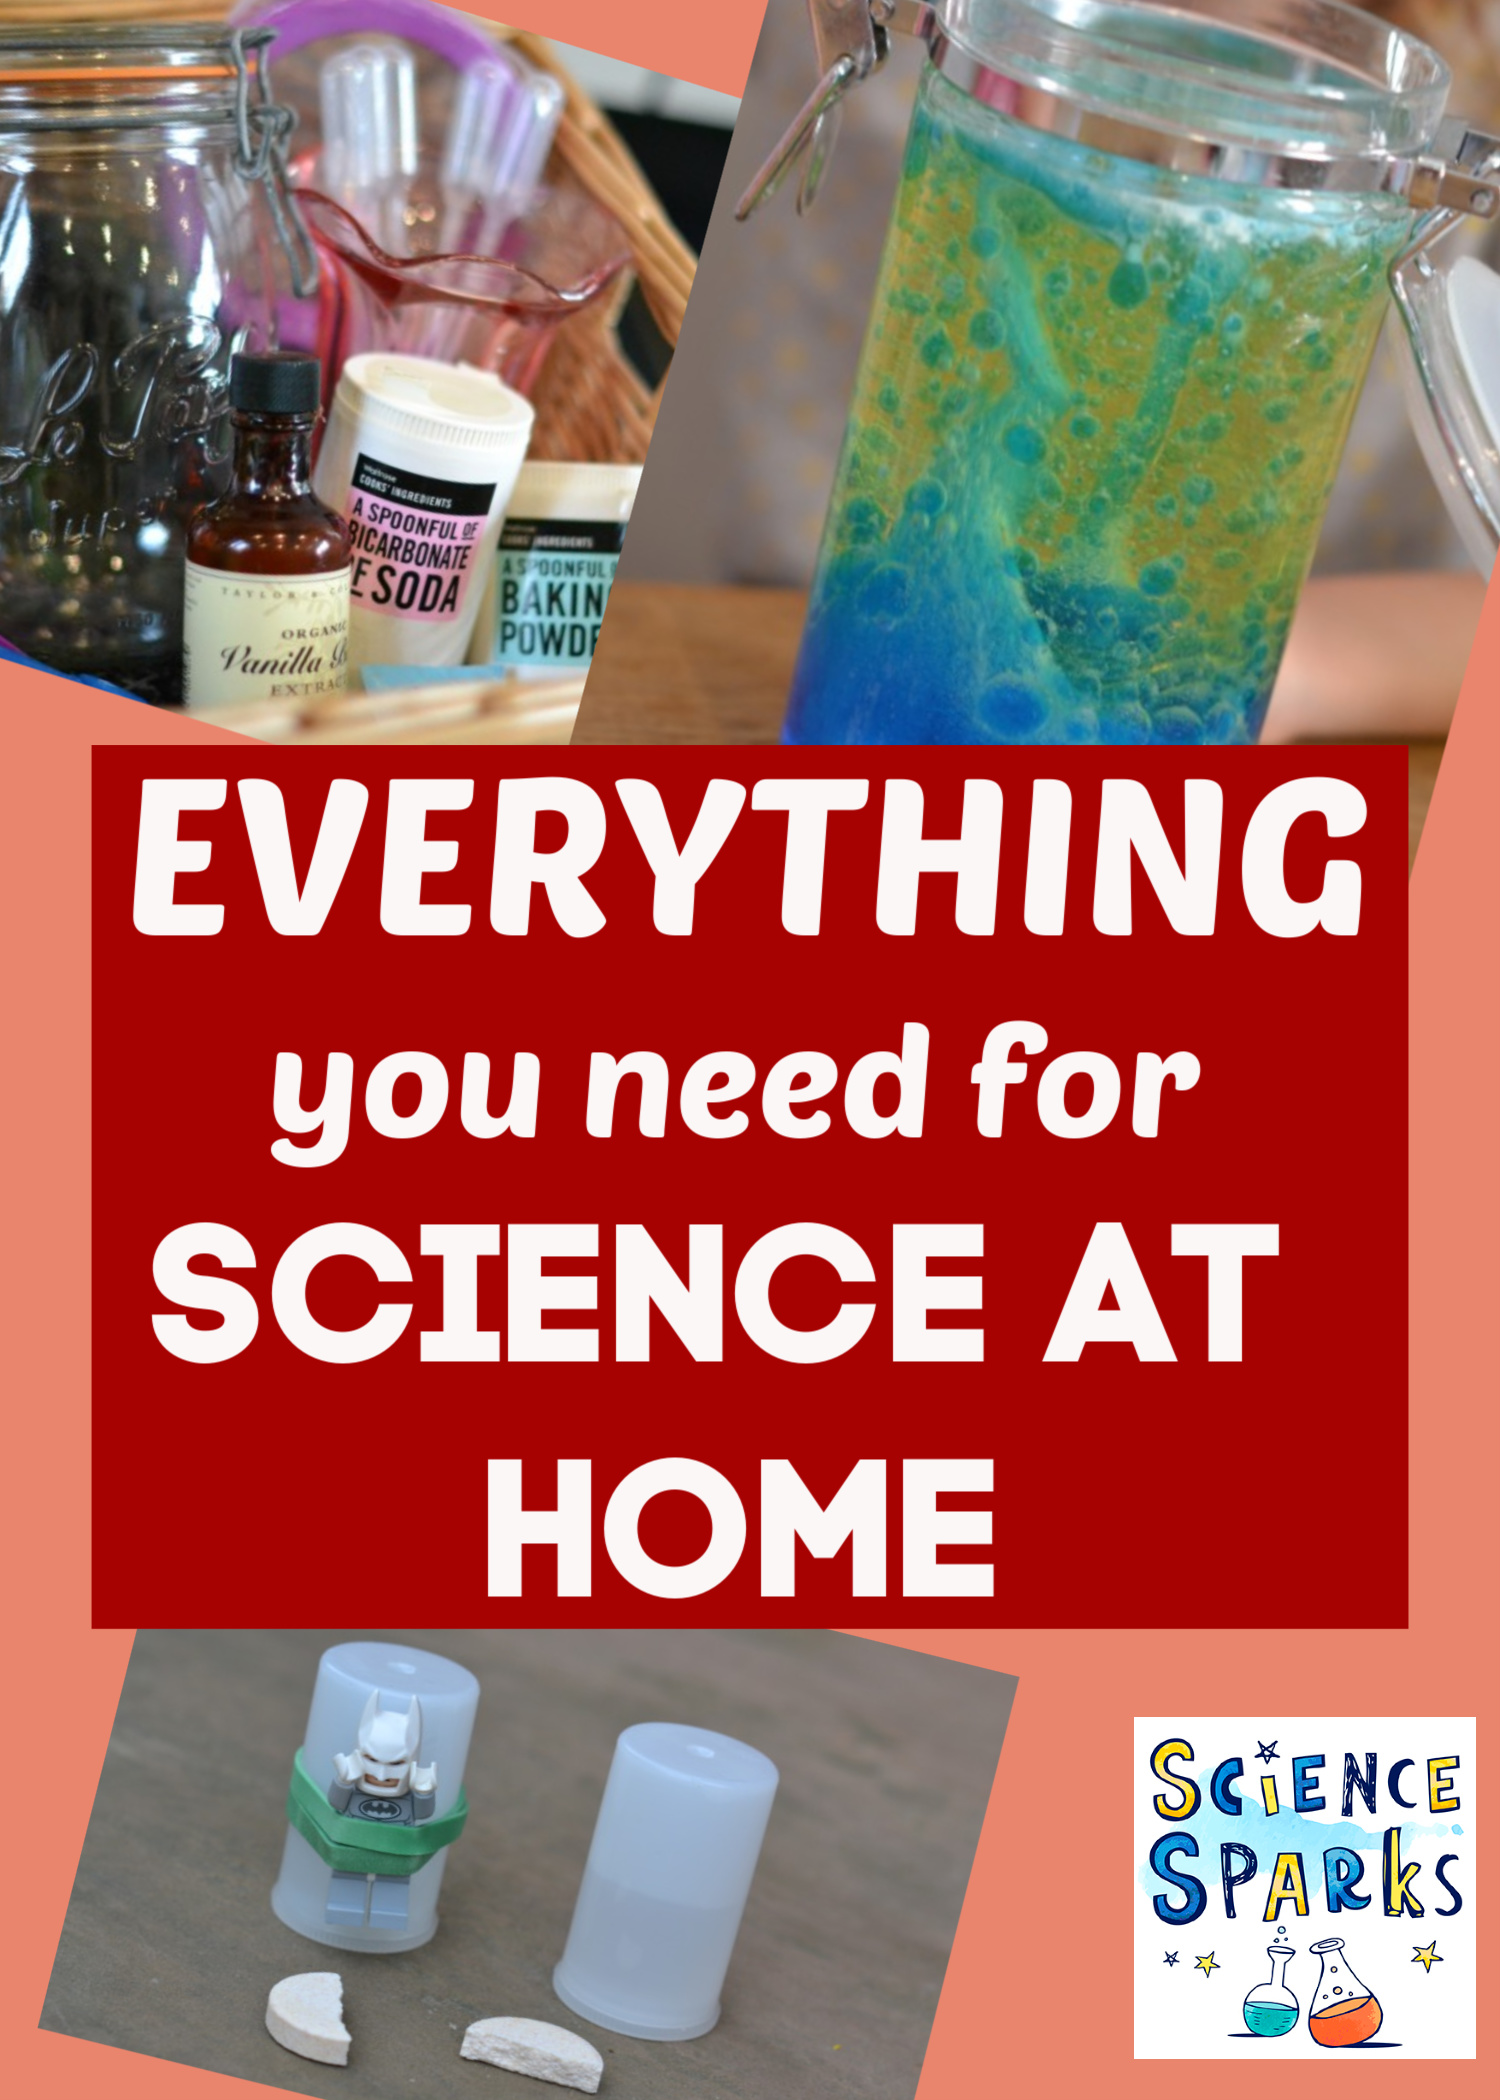 Everything you need for science at home - list of ingredients, resources and experiment ideas for awesome science at home #scienceforkids #scienceathome